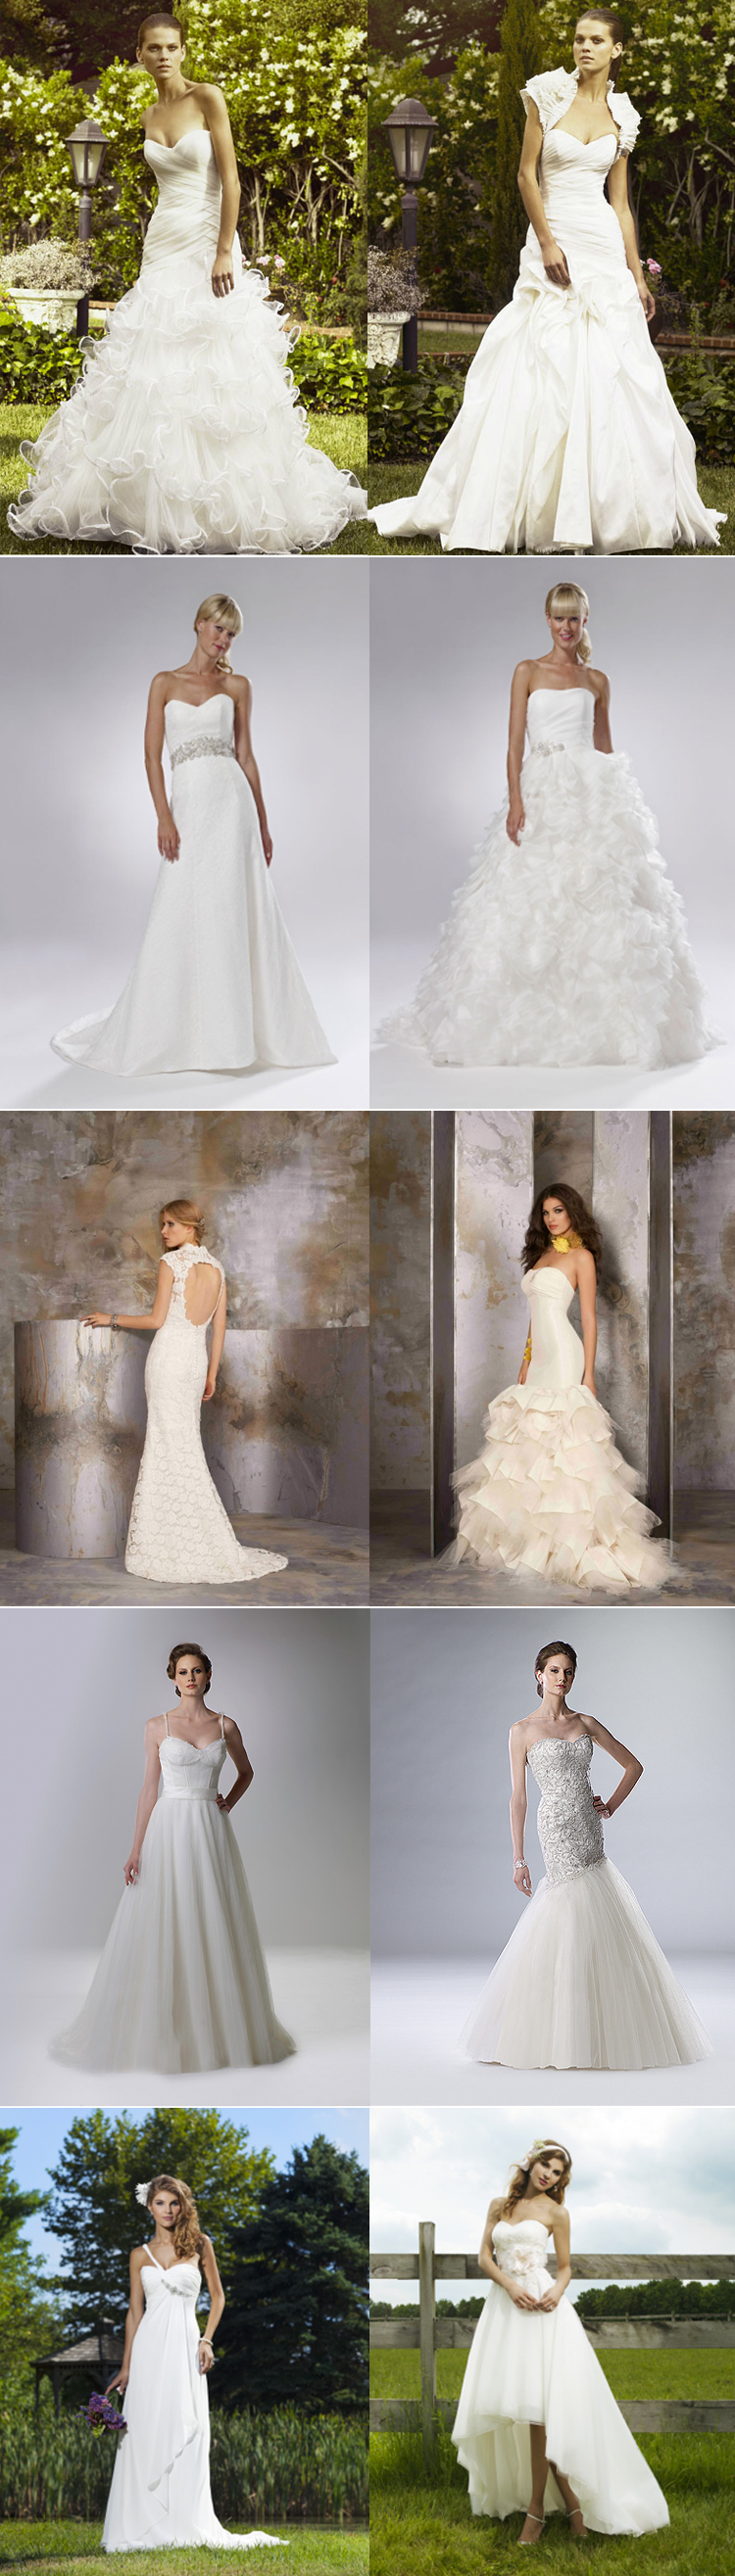 Texas wedding dresses The Blushing Bride in Frisco, Texas